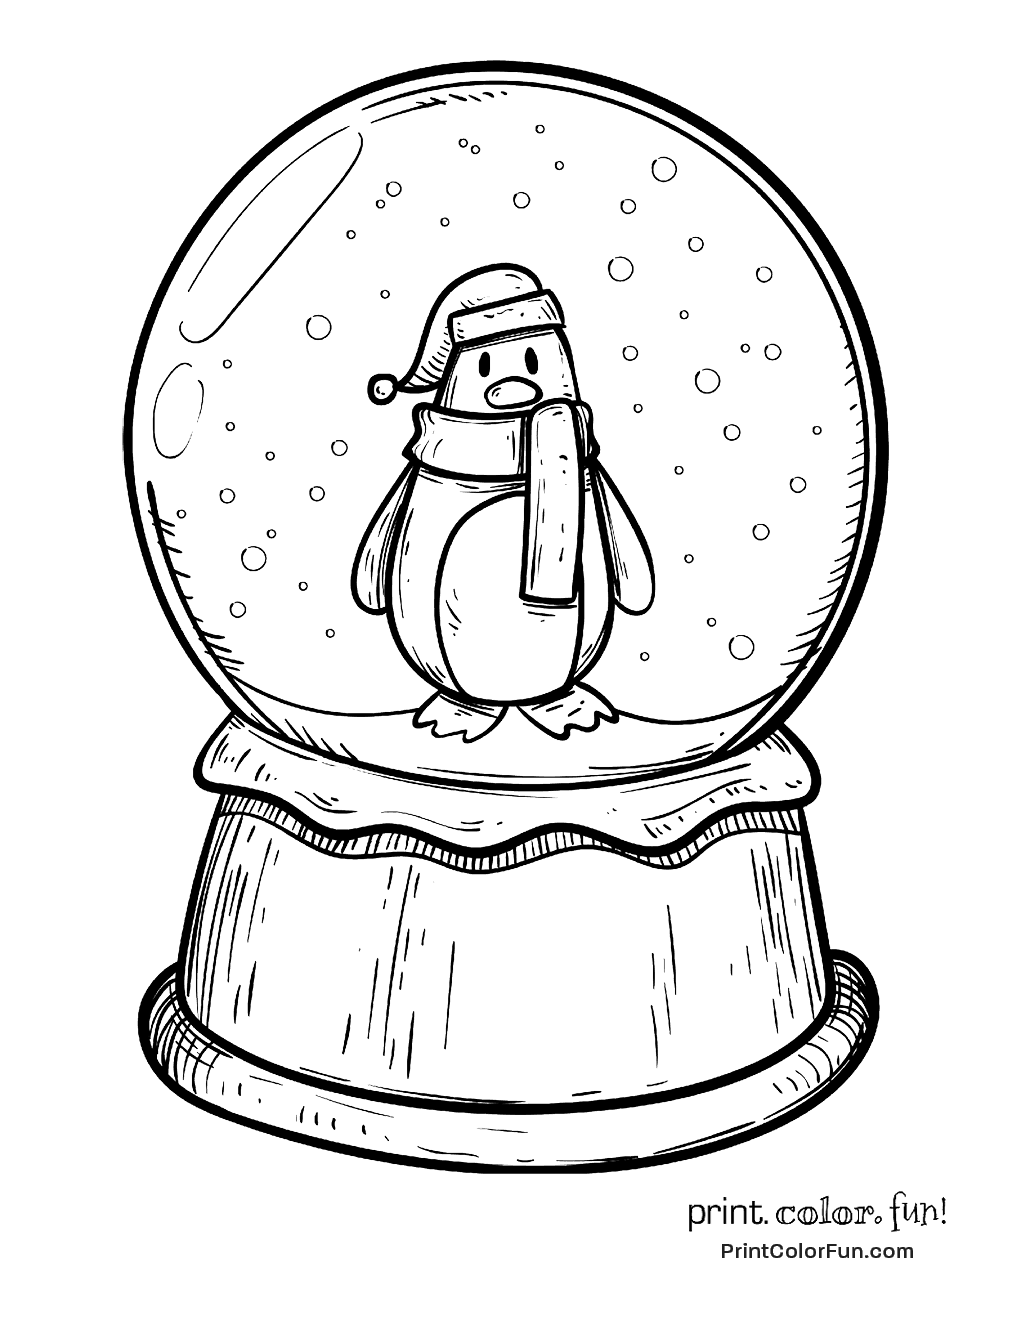 Winter snow globe with a penguin coloring page - Print. Color. Fun!